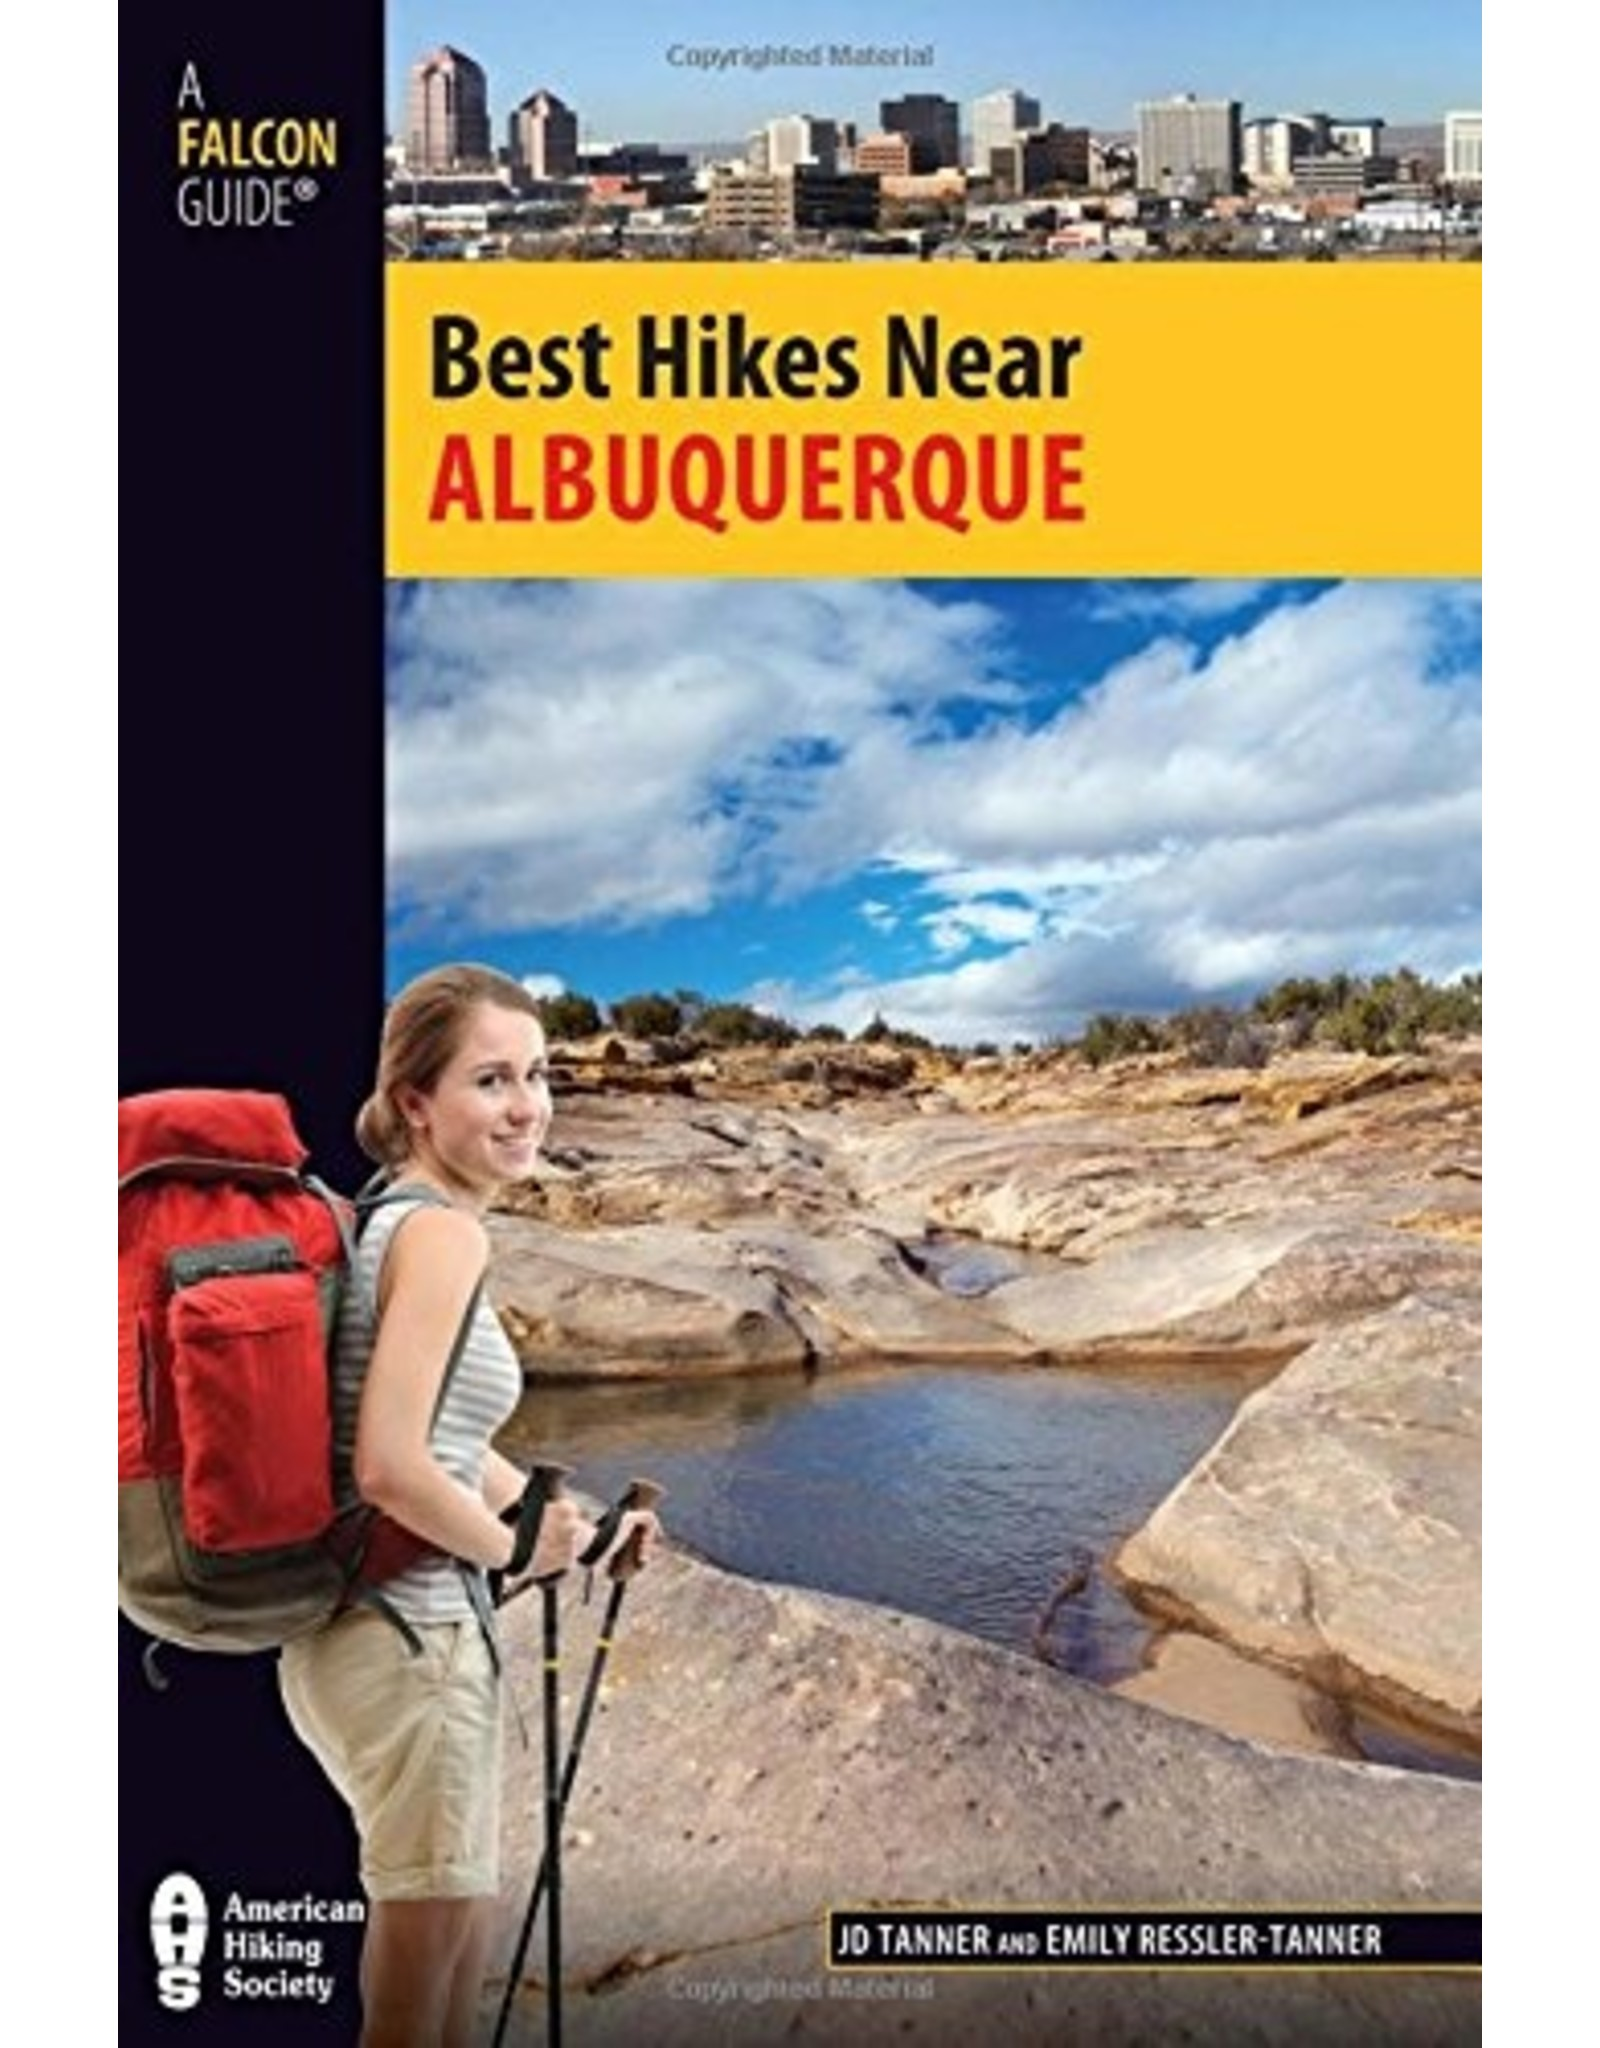 NATIONAL BOOK NETWRK Best Hikes Near Albuquerque (Best Hikes Near Series) Paperback – Illustrated